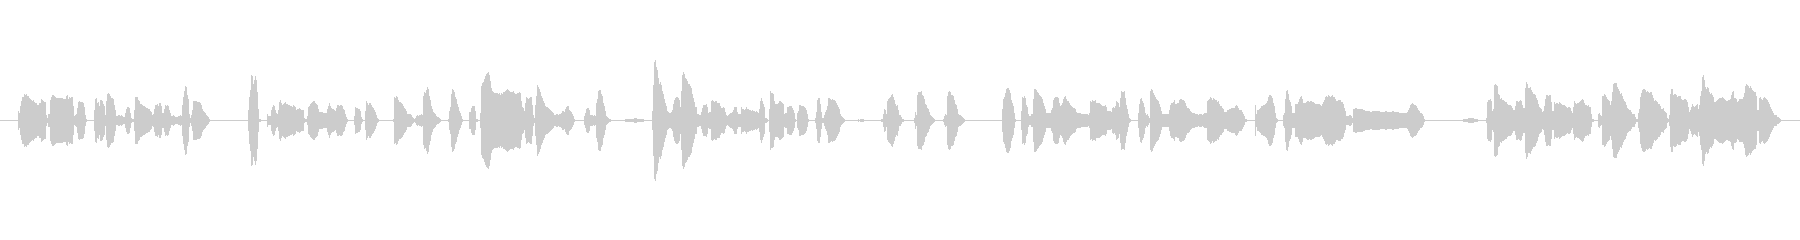 Slowly female a cappella's unreproduced waveform